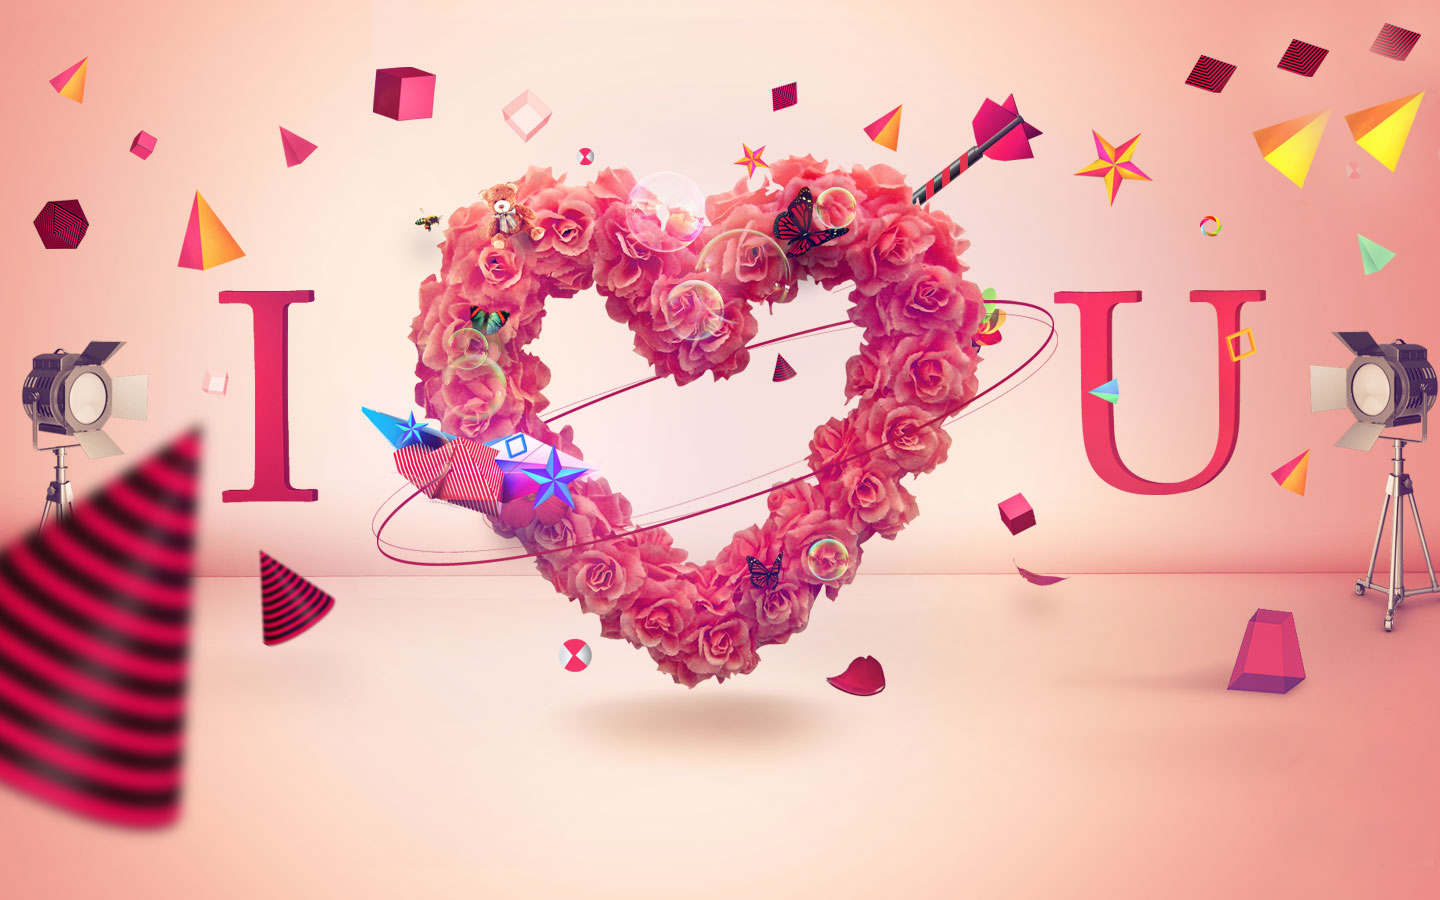 Love Wallpapers 1080p Free Download Wallpapersafari